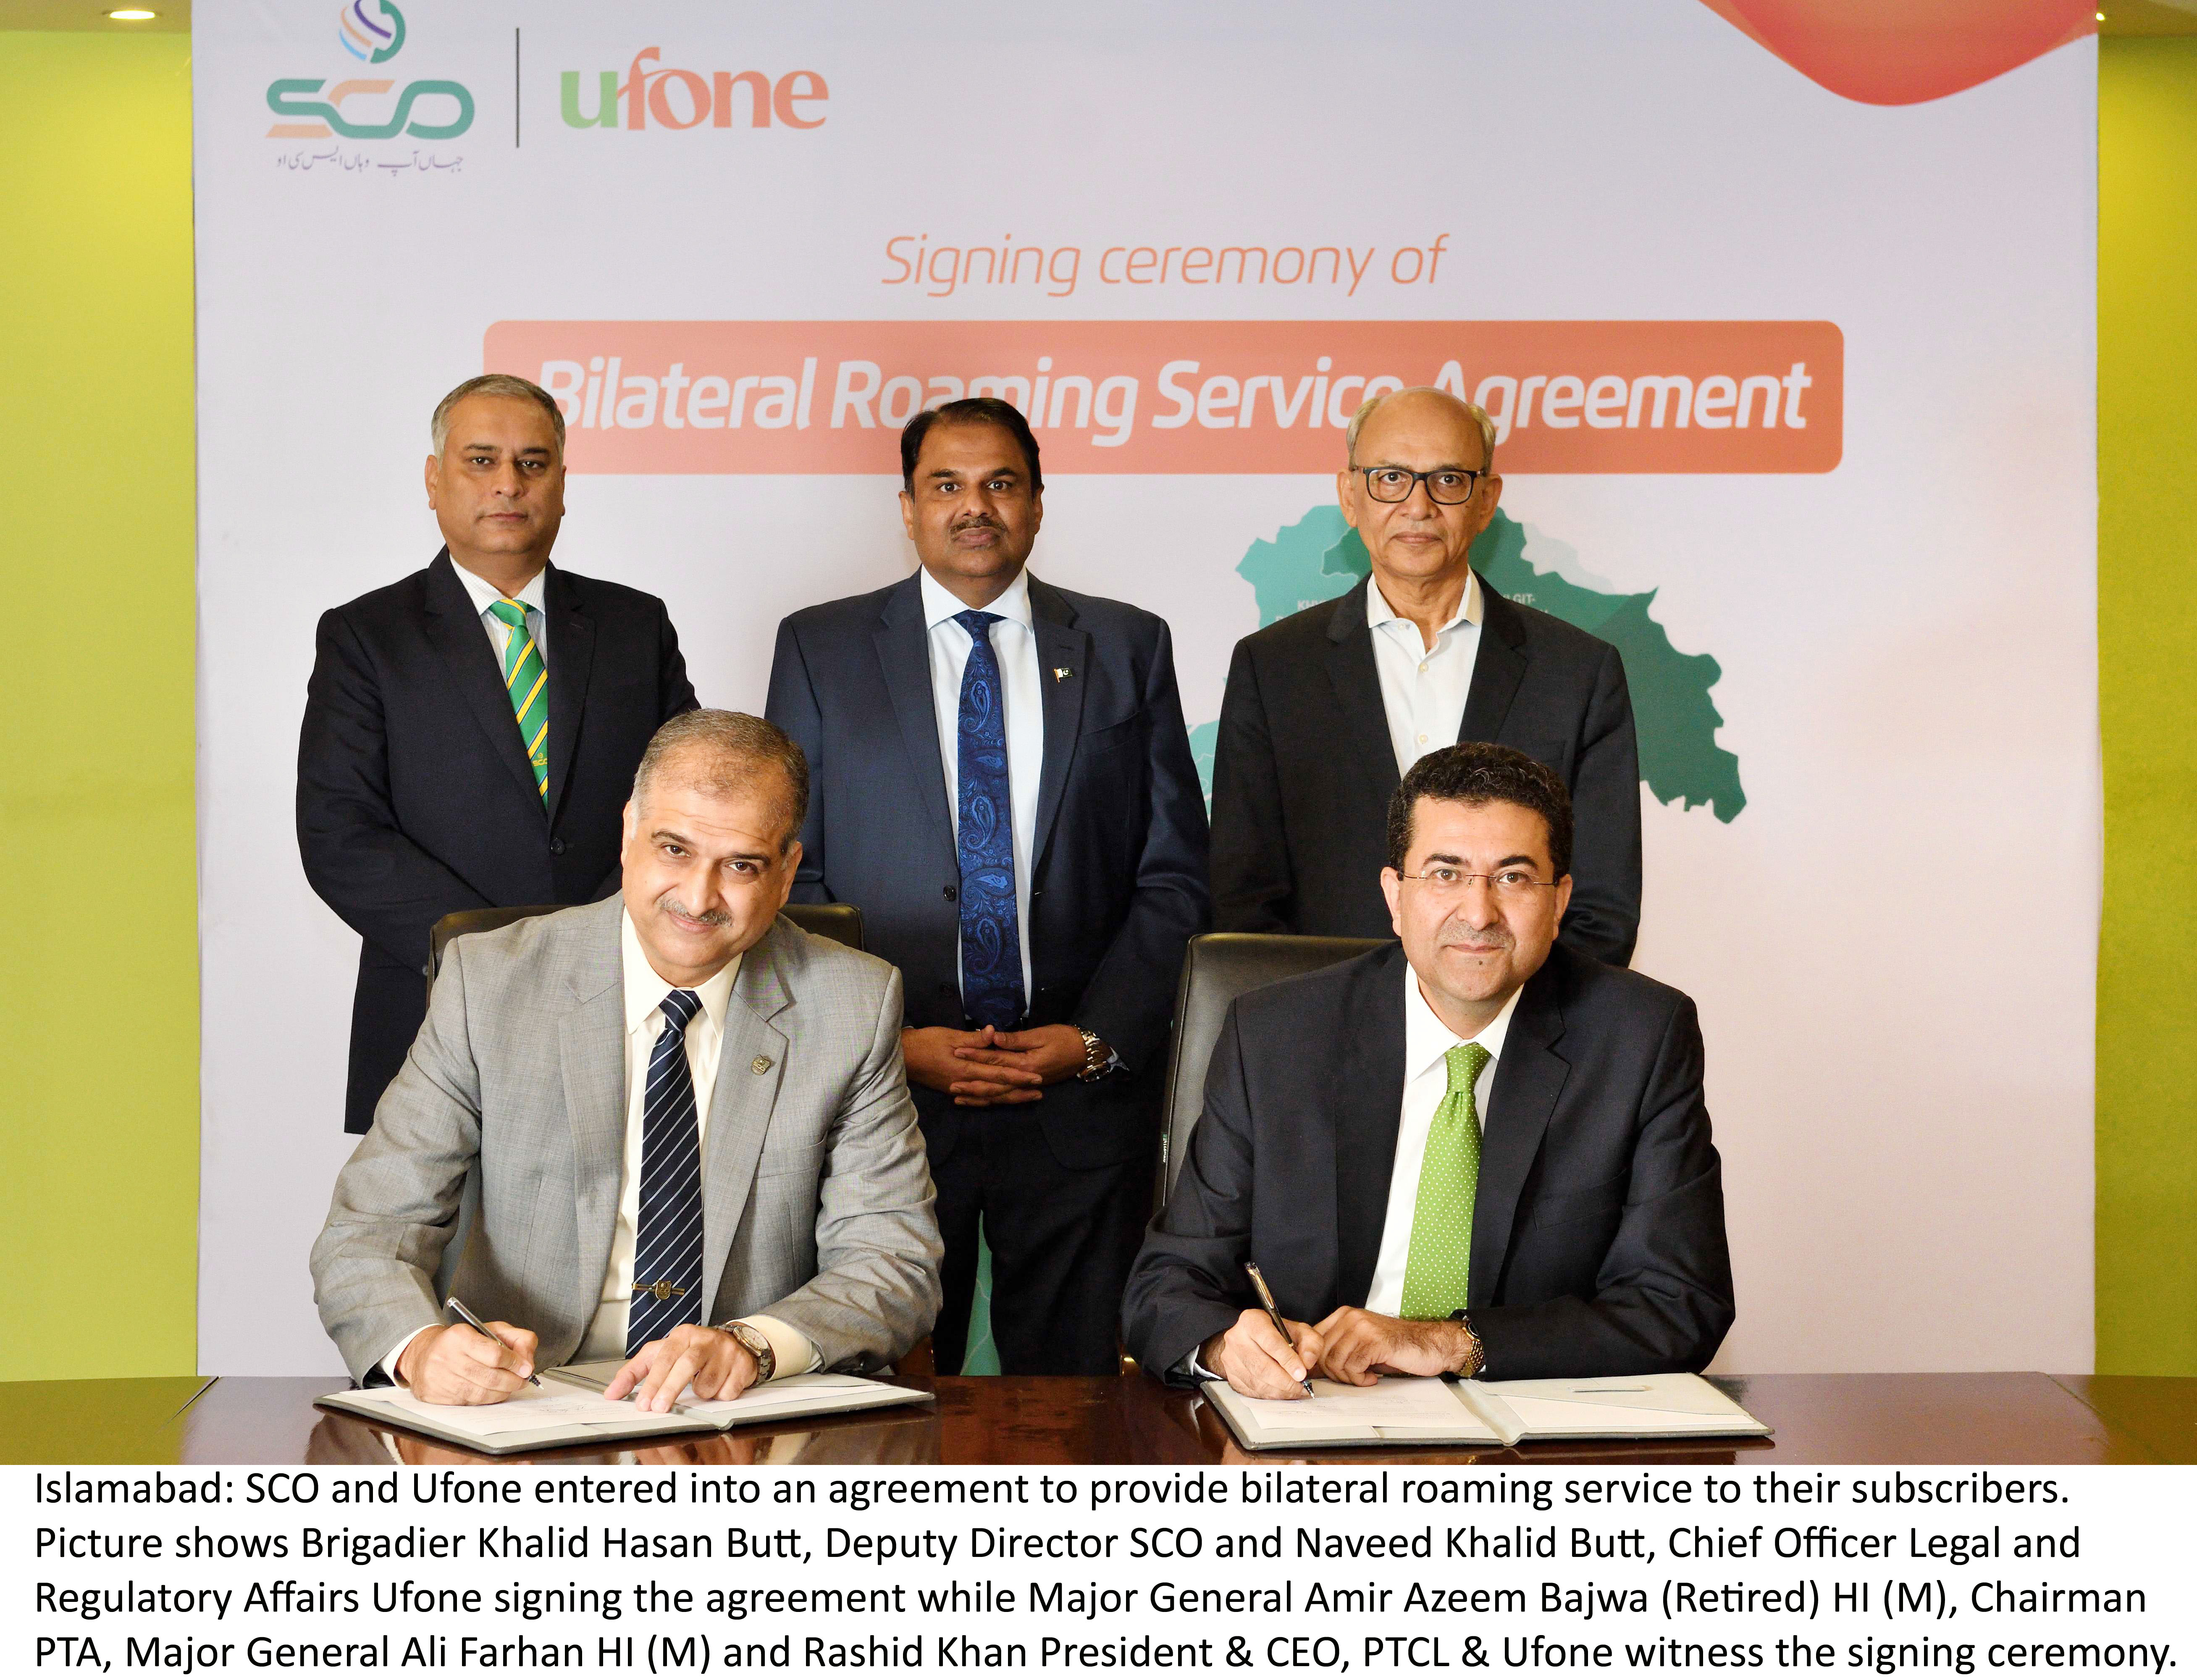 SCO & Ufone Signs Bilateral Roaming Service Agreement